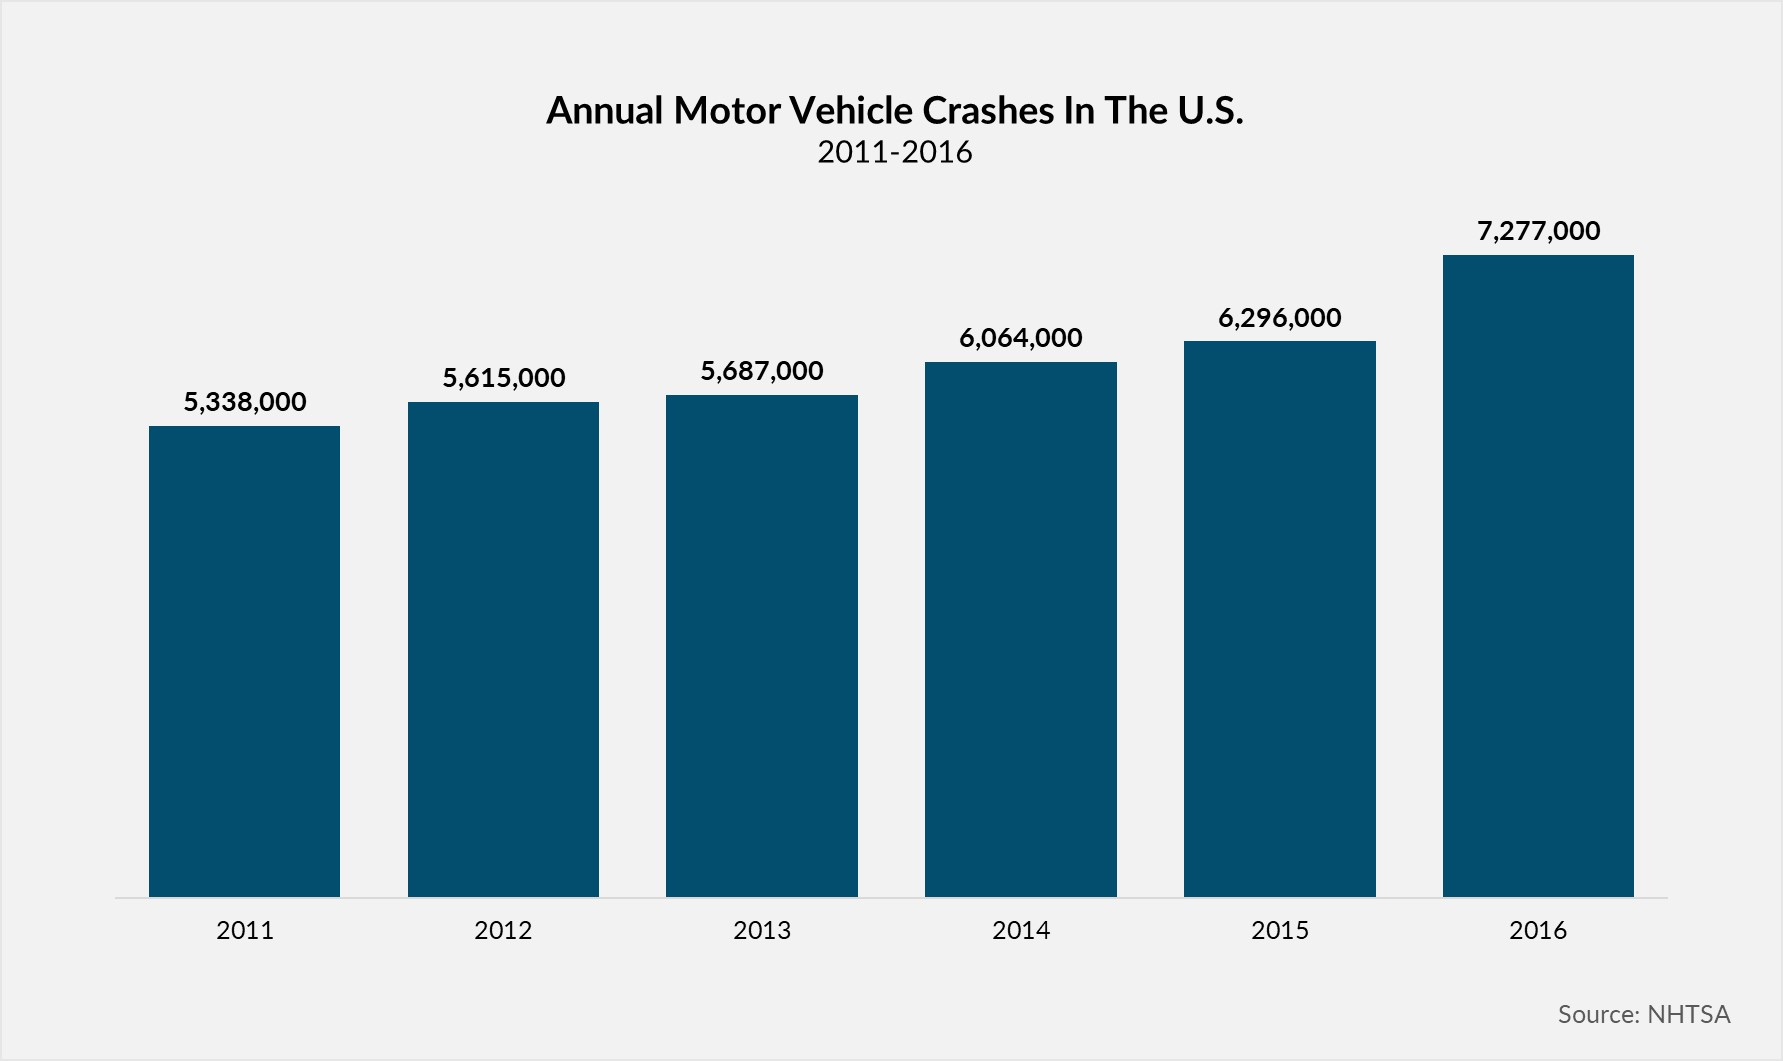 Annual Car Crashes in the U.S.